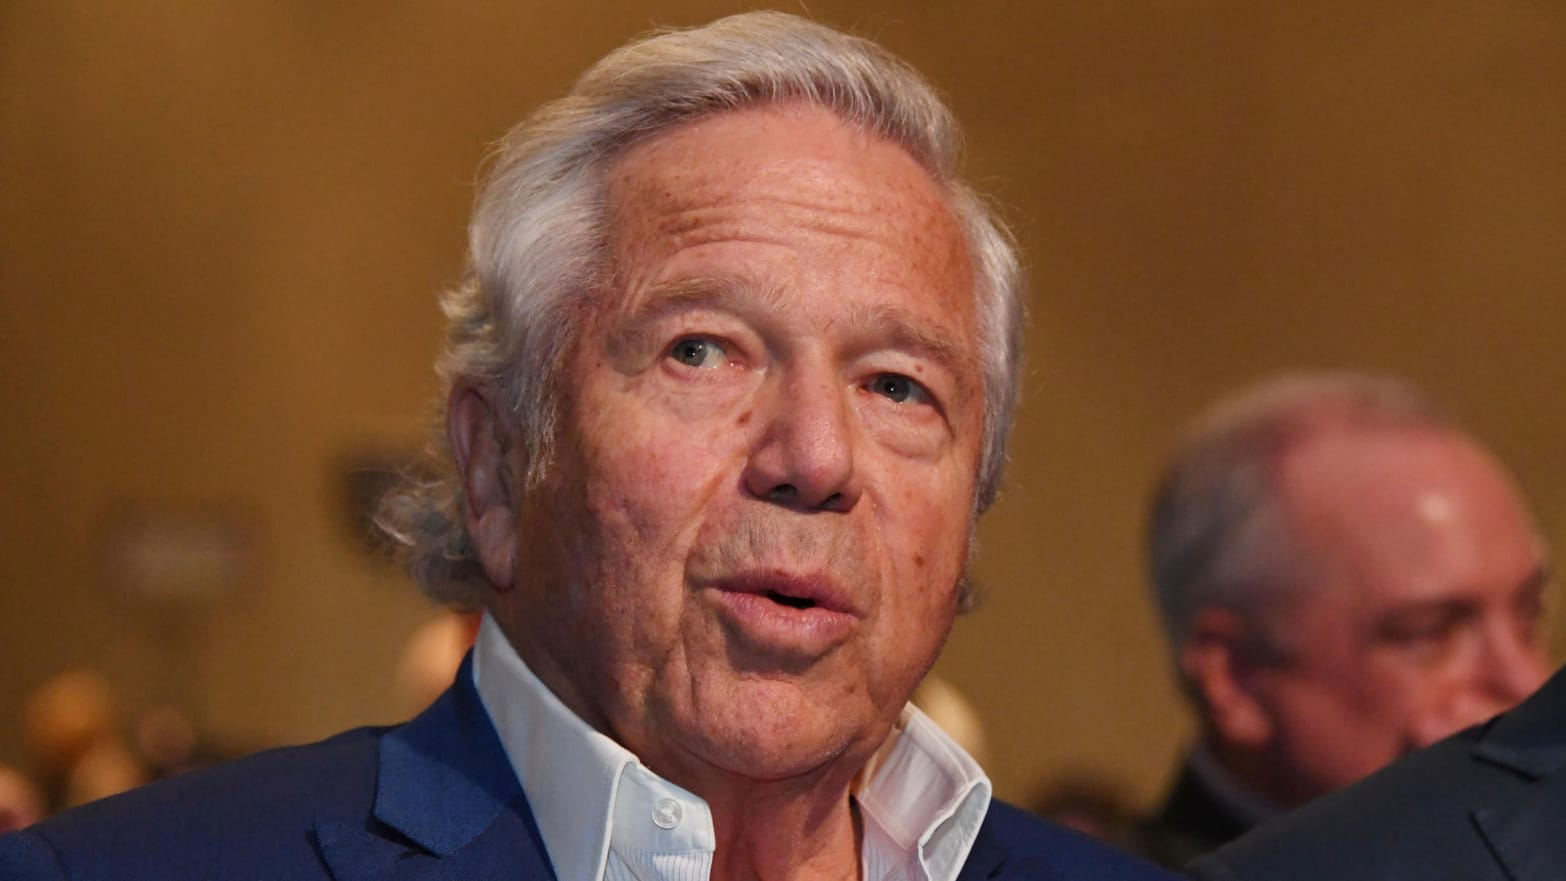 Robert Kraft Is Just One of Many Rich and Powerful Men